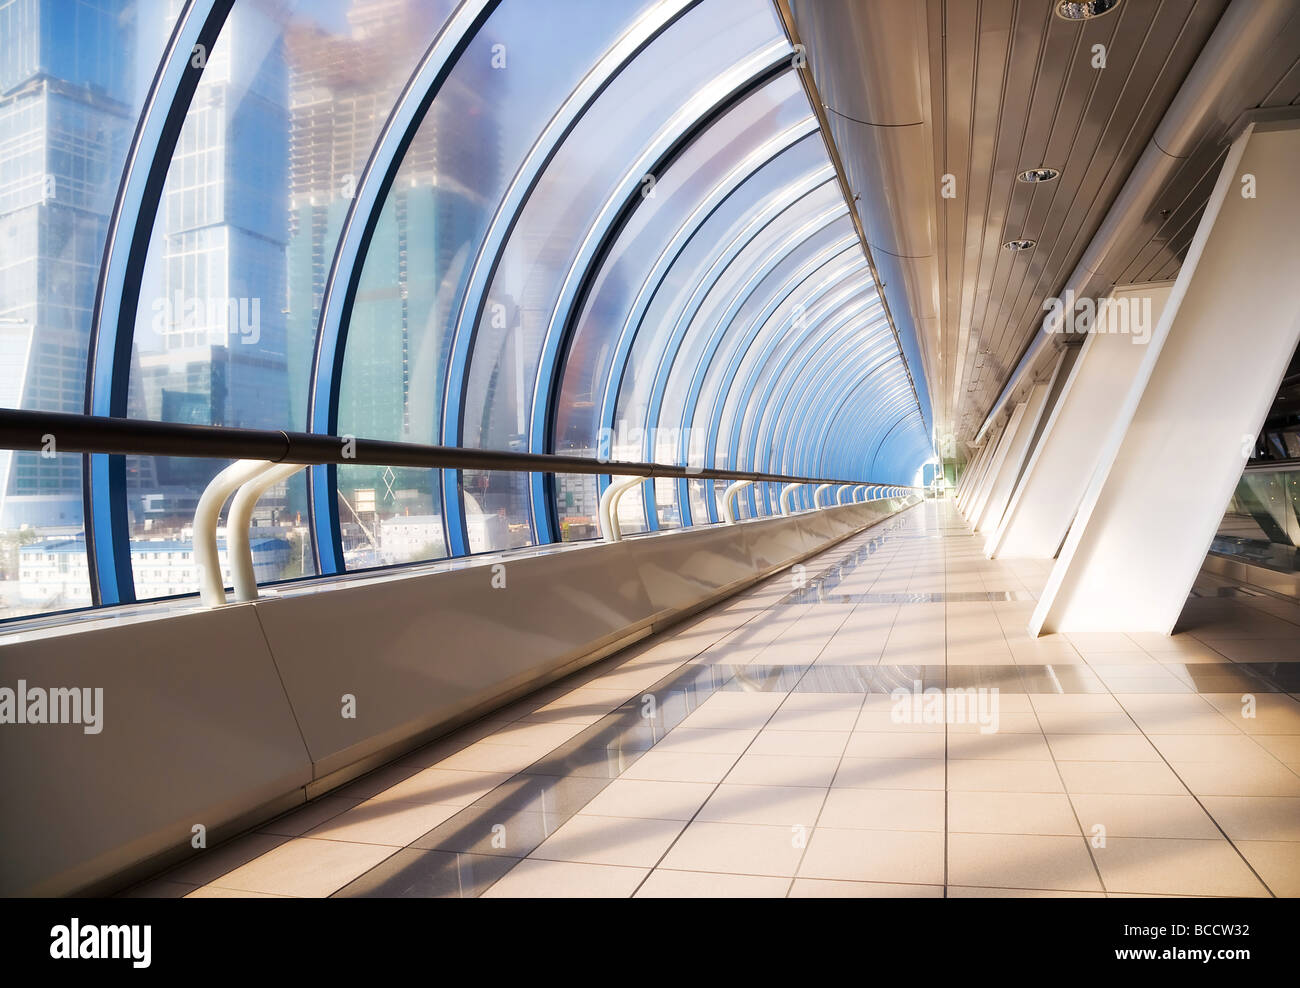 Pont moderne grand angle intérieur Photo Stock